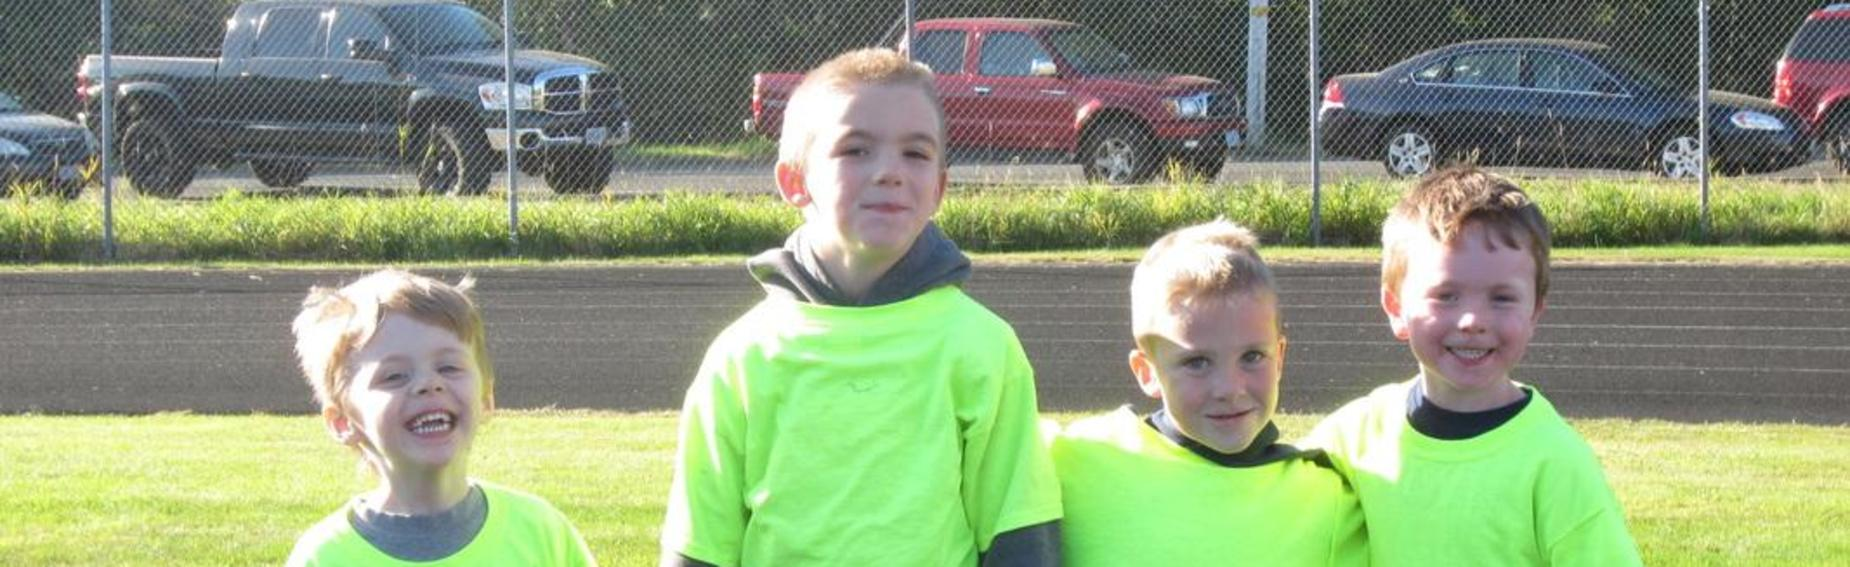 Four boys standing together smiling in florescent tee-shirts